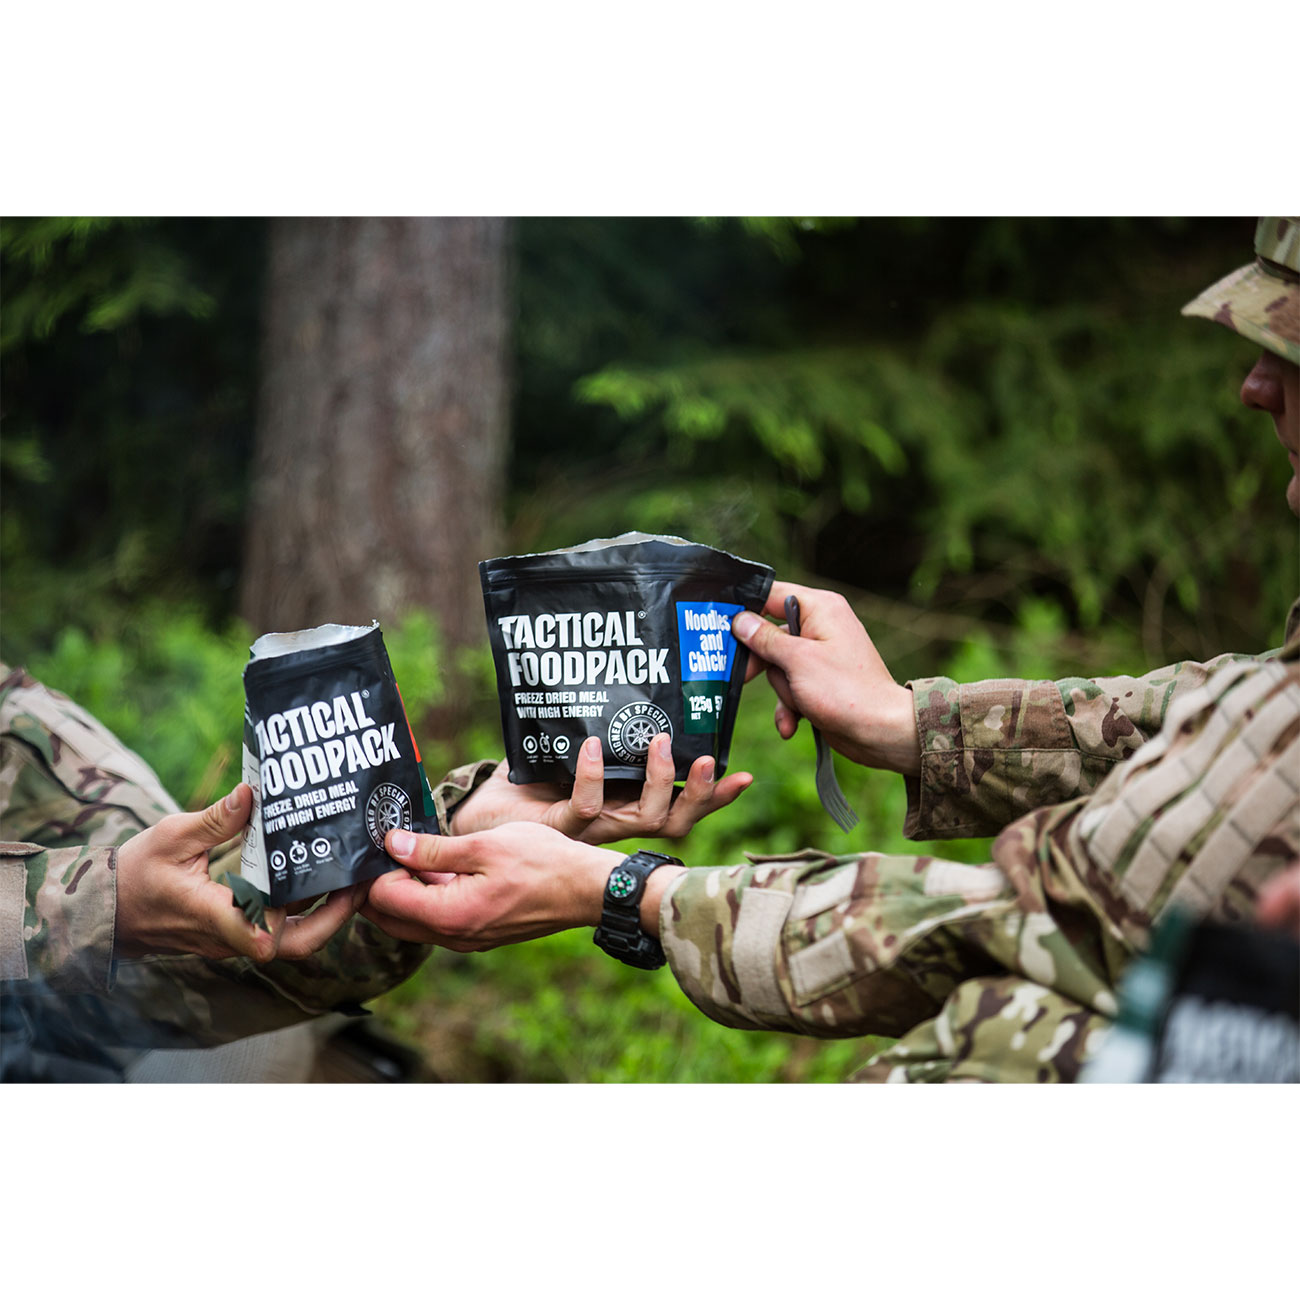 Tactical Foodpack Outdoor Mahlzeit Hühnchen mit Nudeln 10